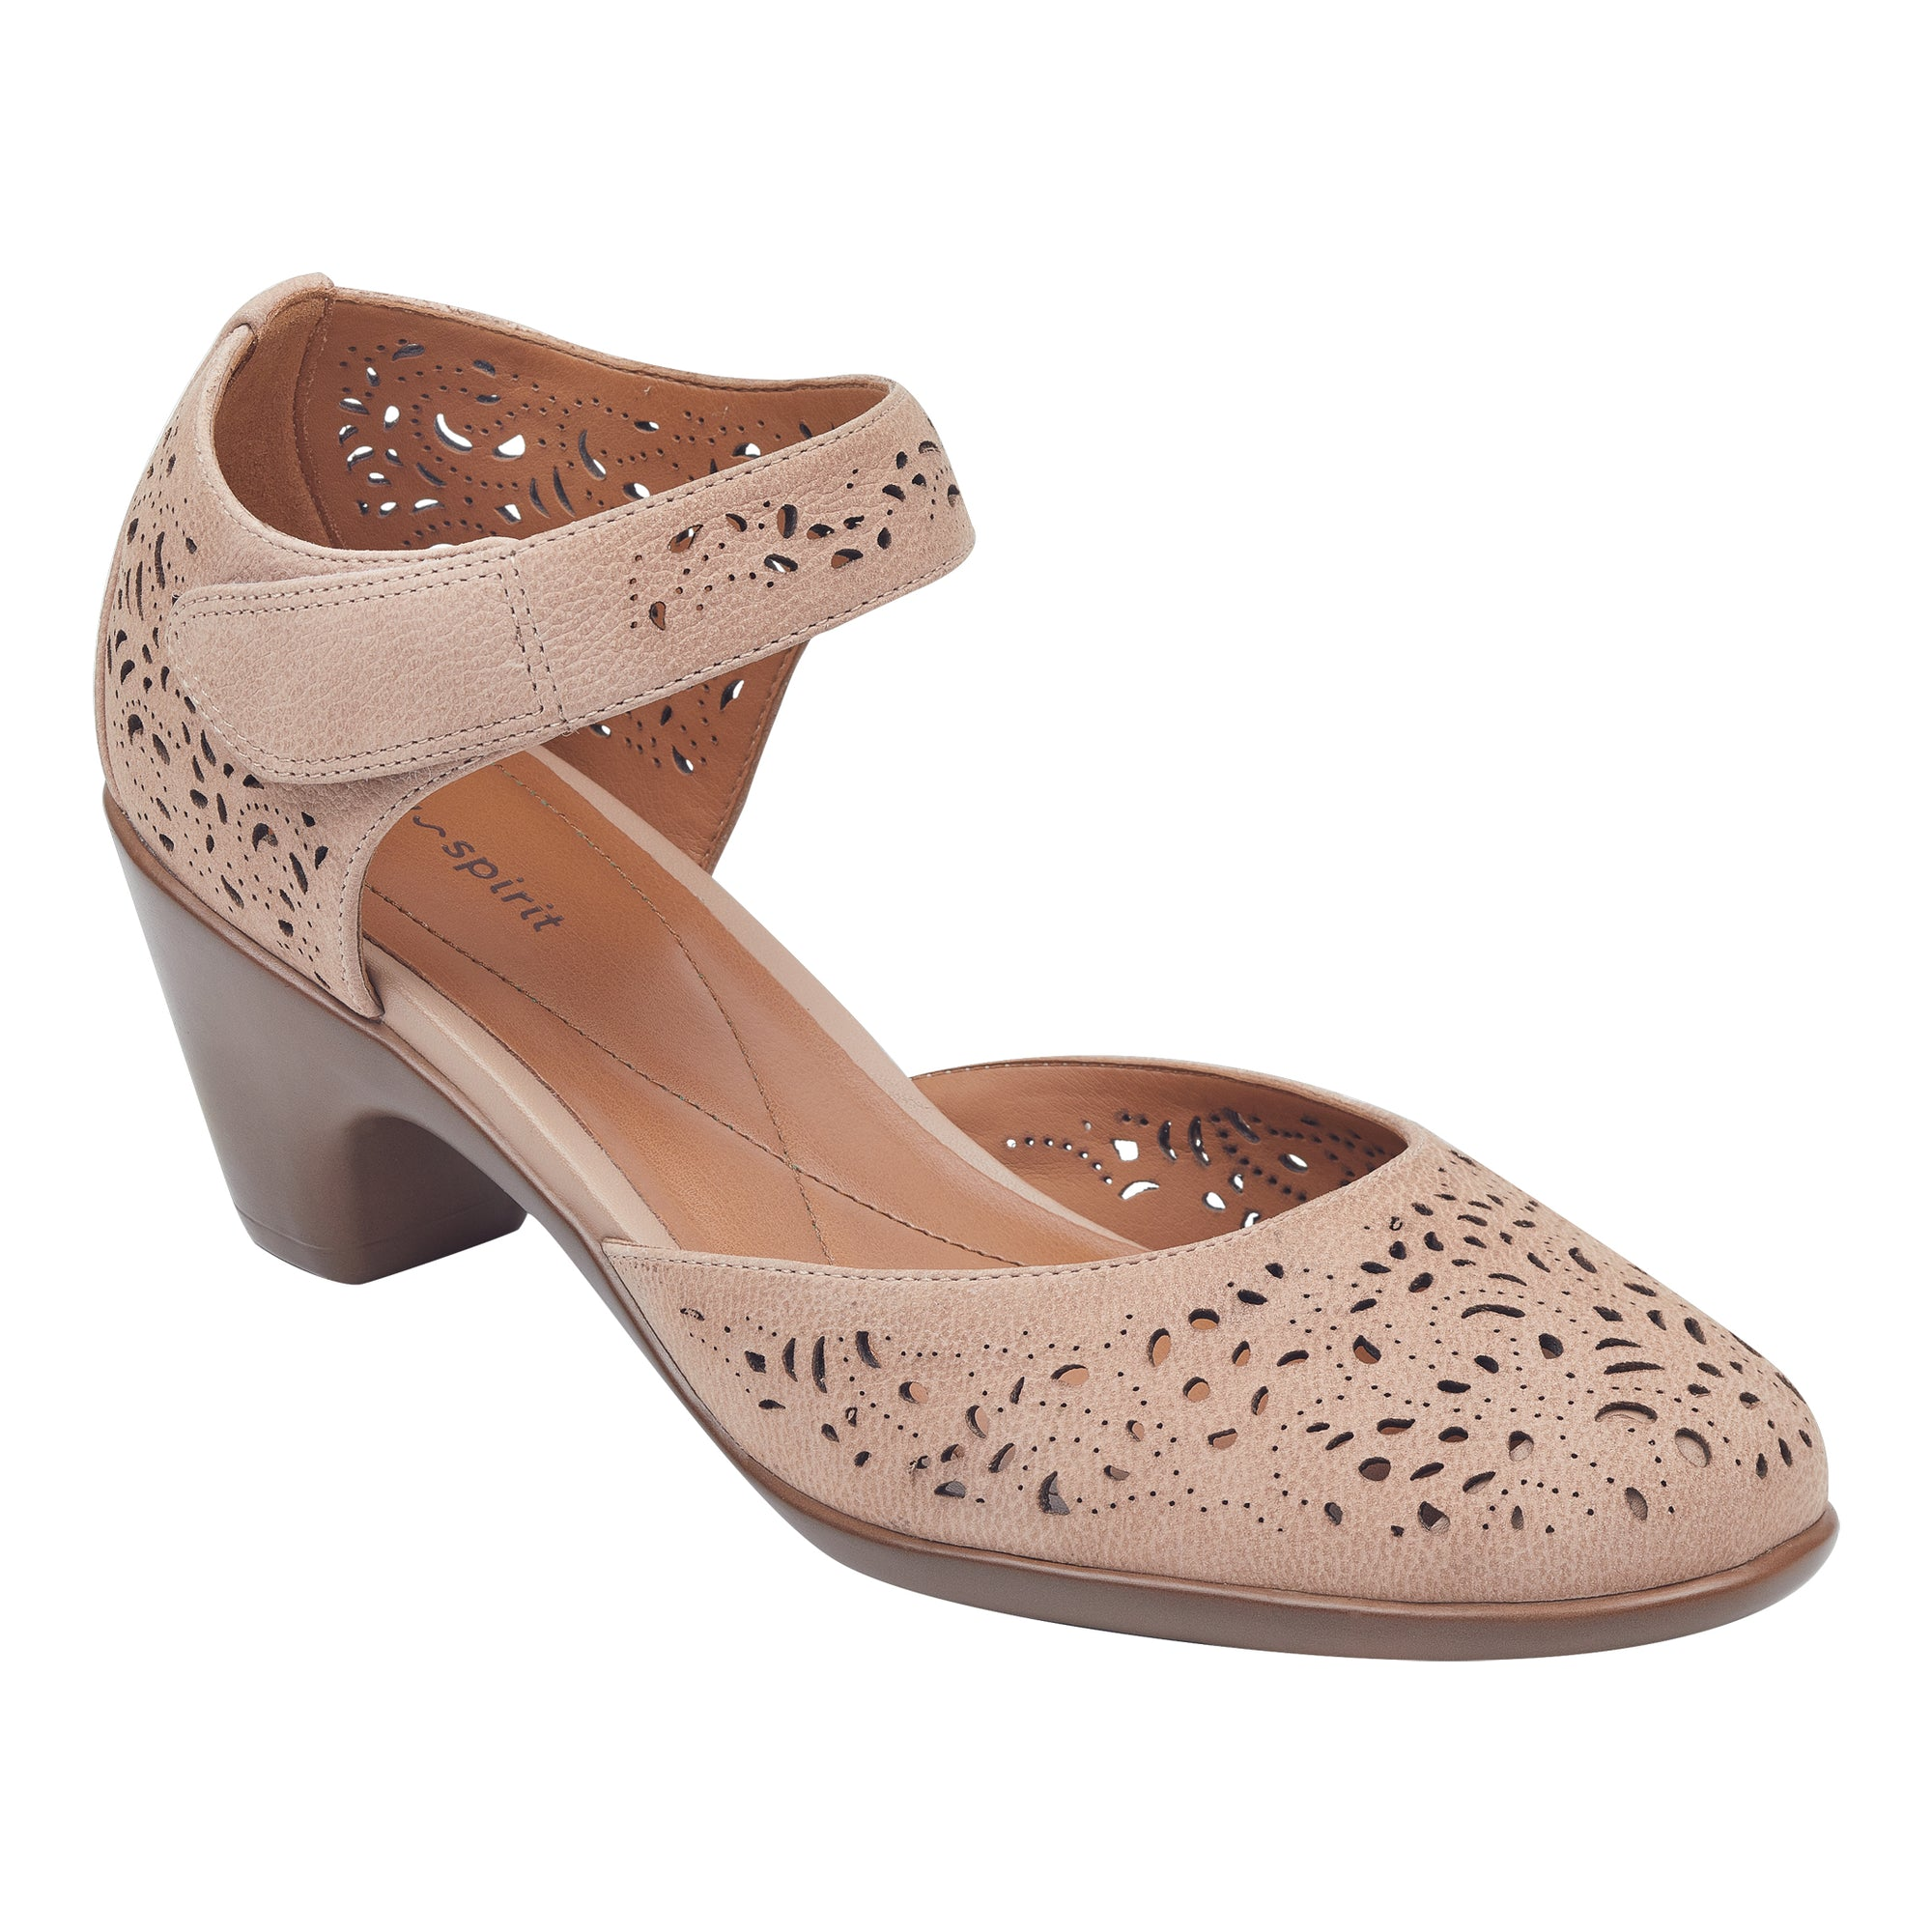 cindie-mary-jane-heels-in-rosedust